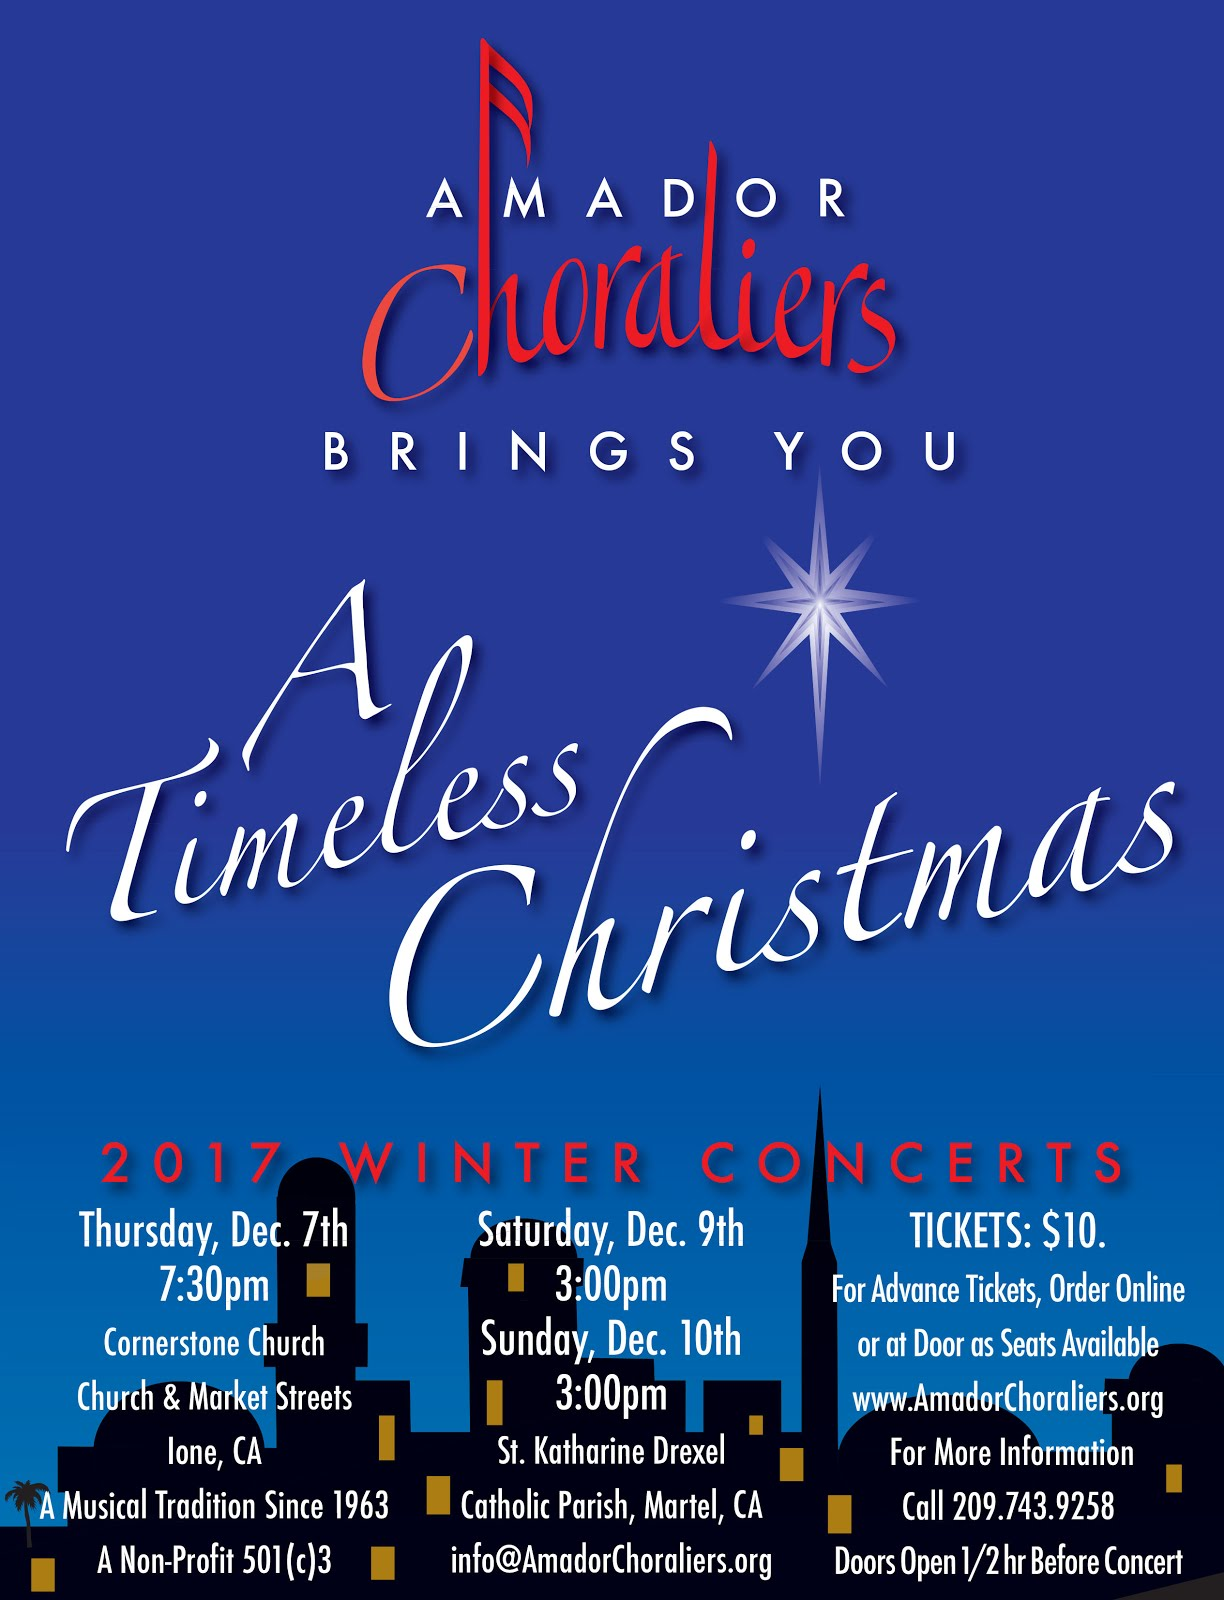 Amador Choraliers: A Timeless Christmas - Dec 7, 9 & 10